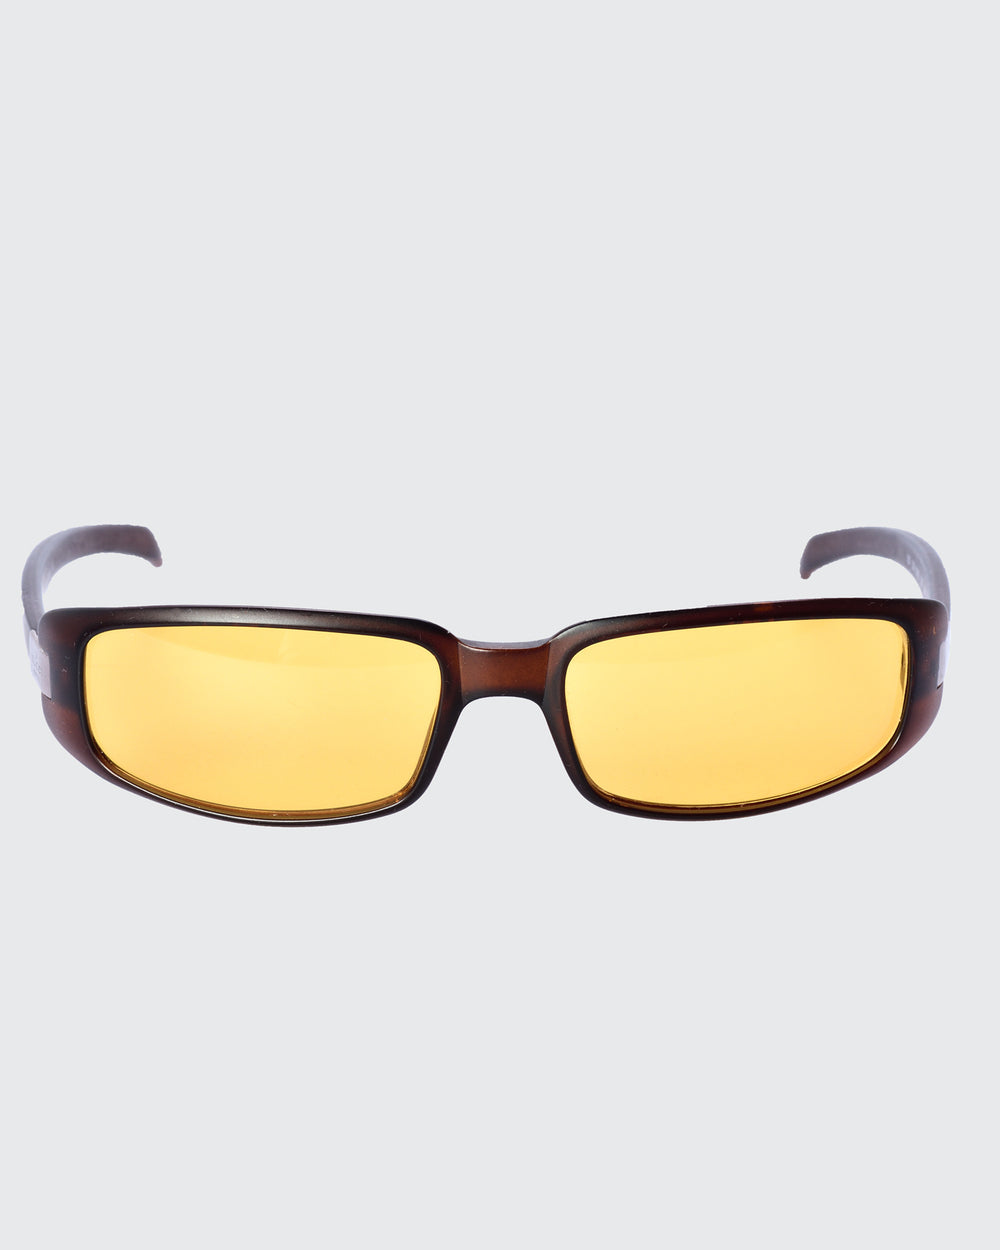 Gucci Matte Brown Sunglasses